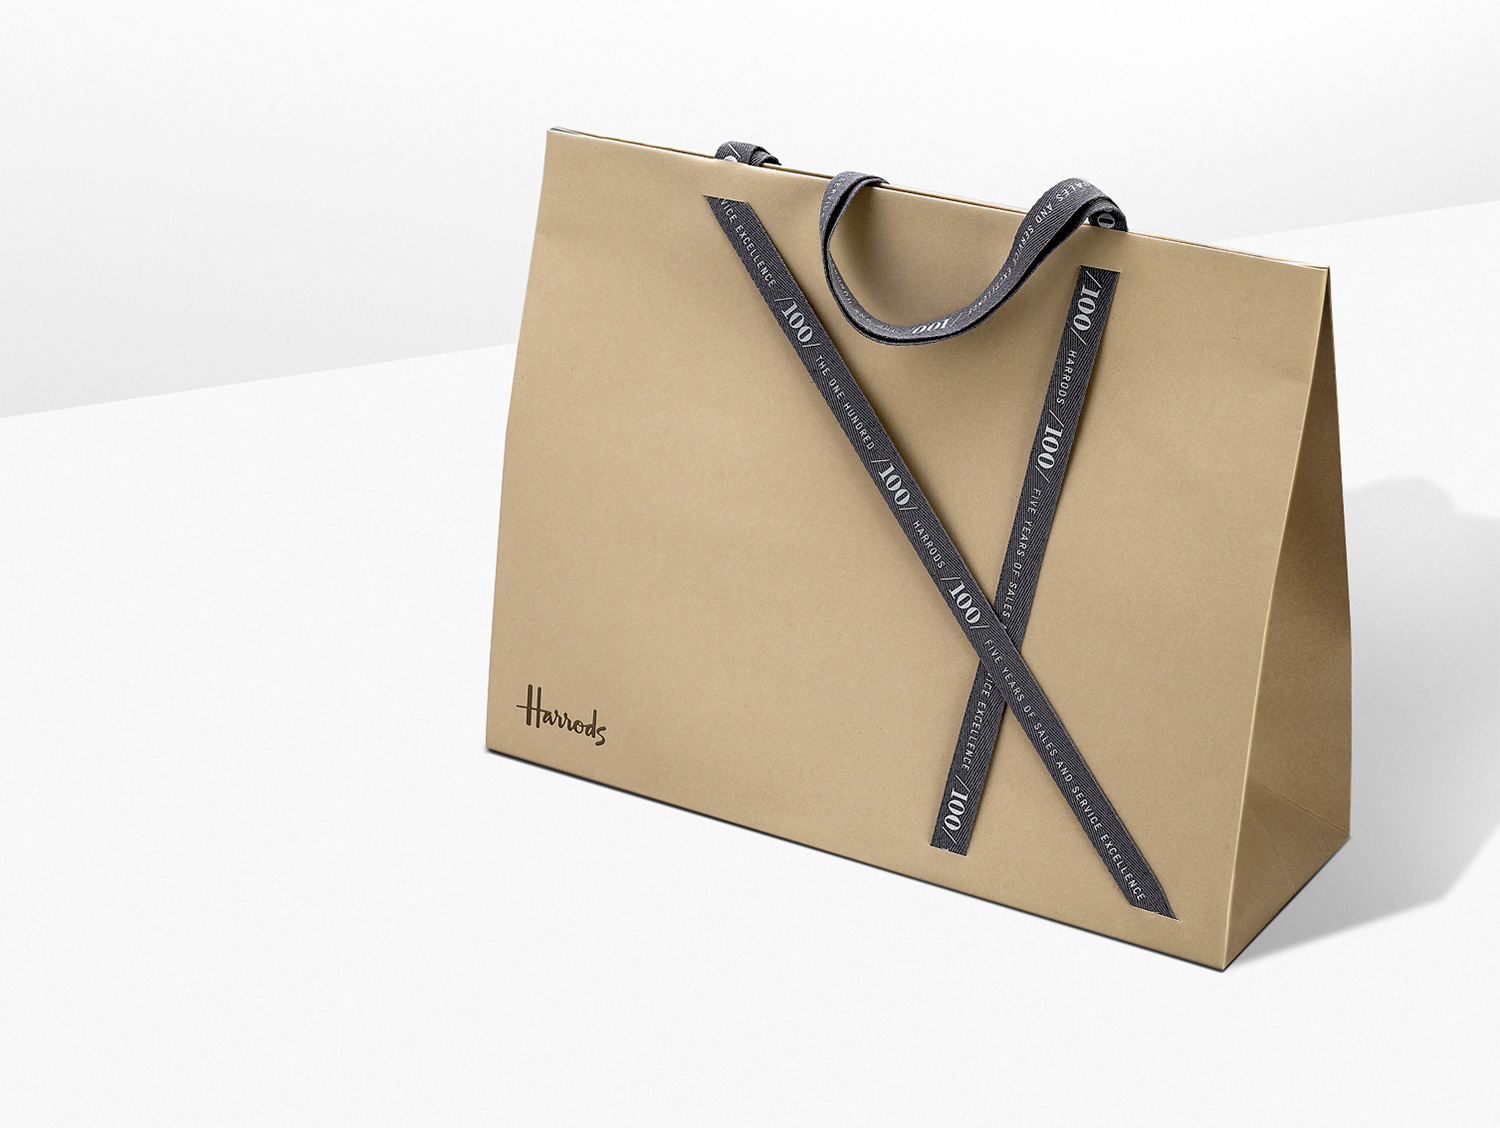 Progress Packaging Harrods Made Thought Luxury handles Printed Ribbon